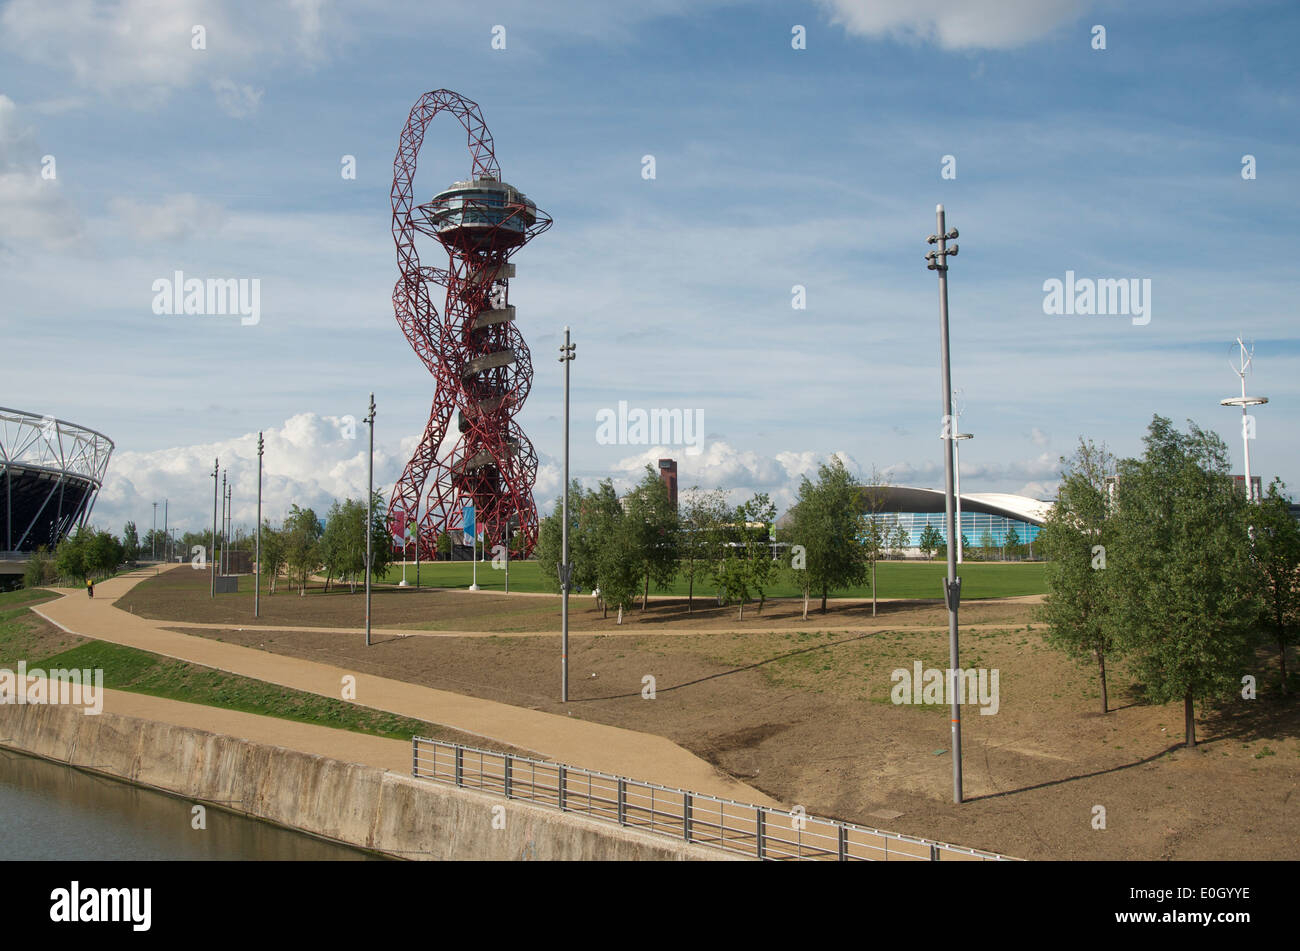 The ArcelorMittal Orbit and the Aquatic Centre at The Queen Elizabeth Olympic Park, Stratford, London, England - Stock Image